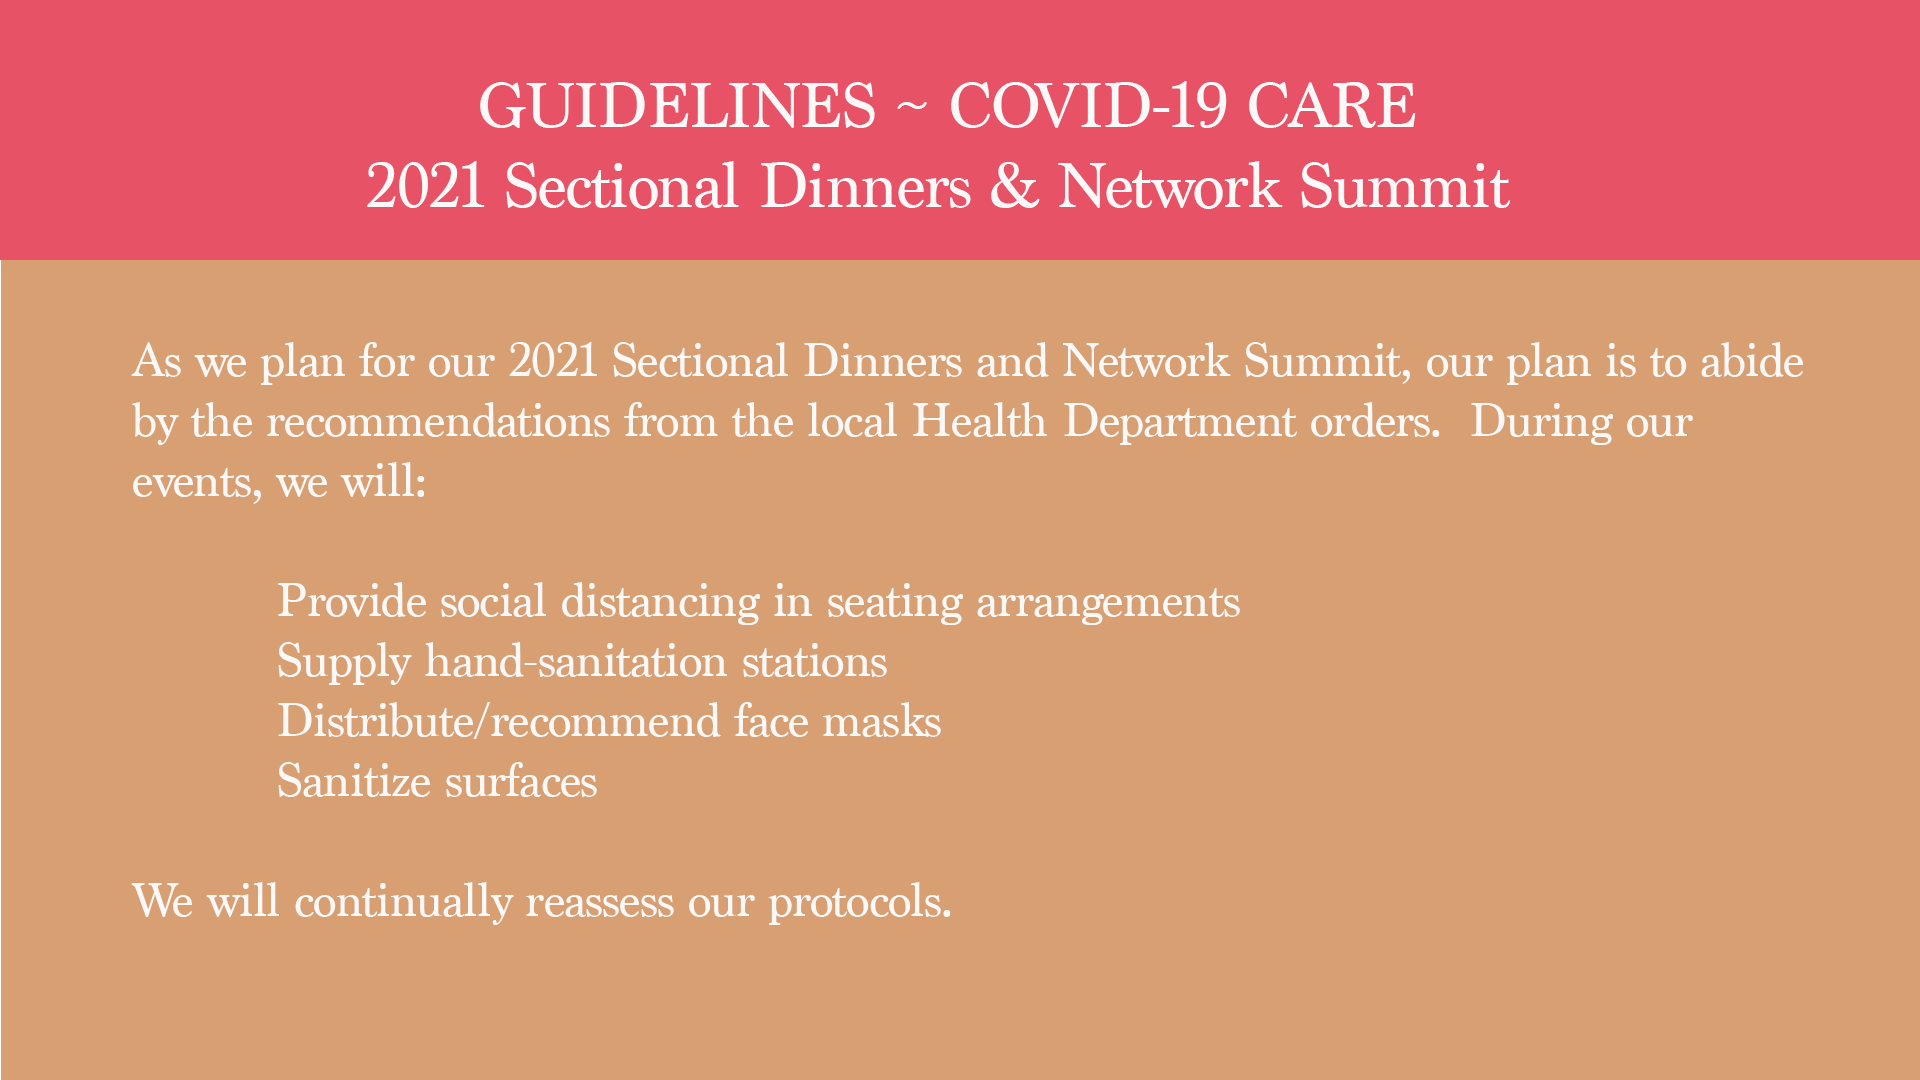 COVID GUIDELINES 2021